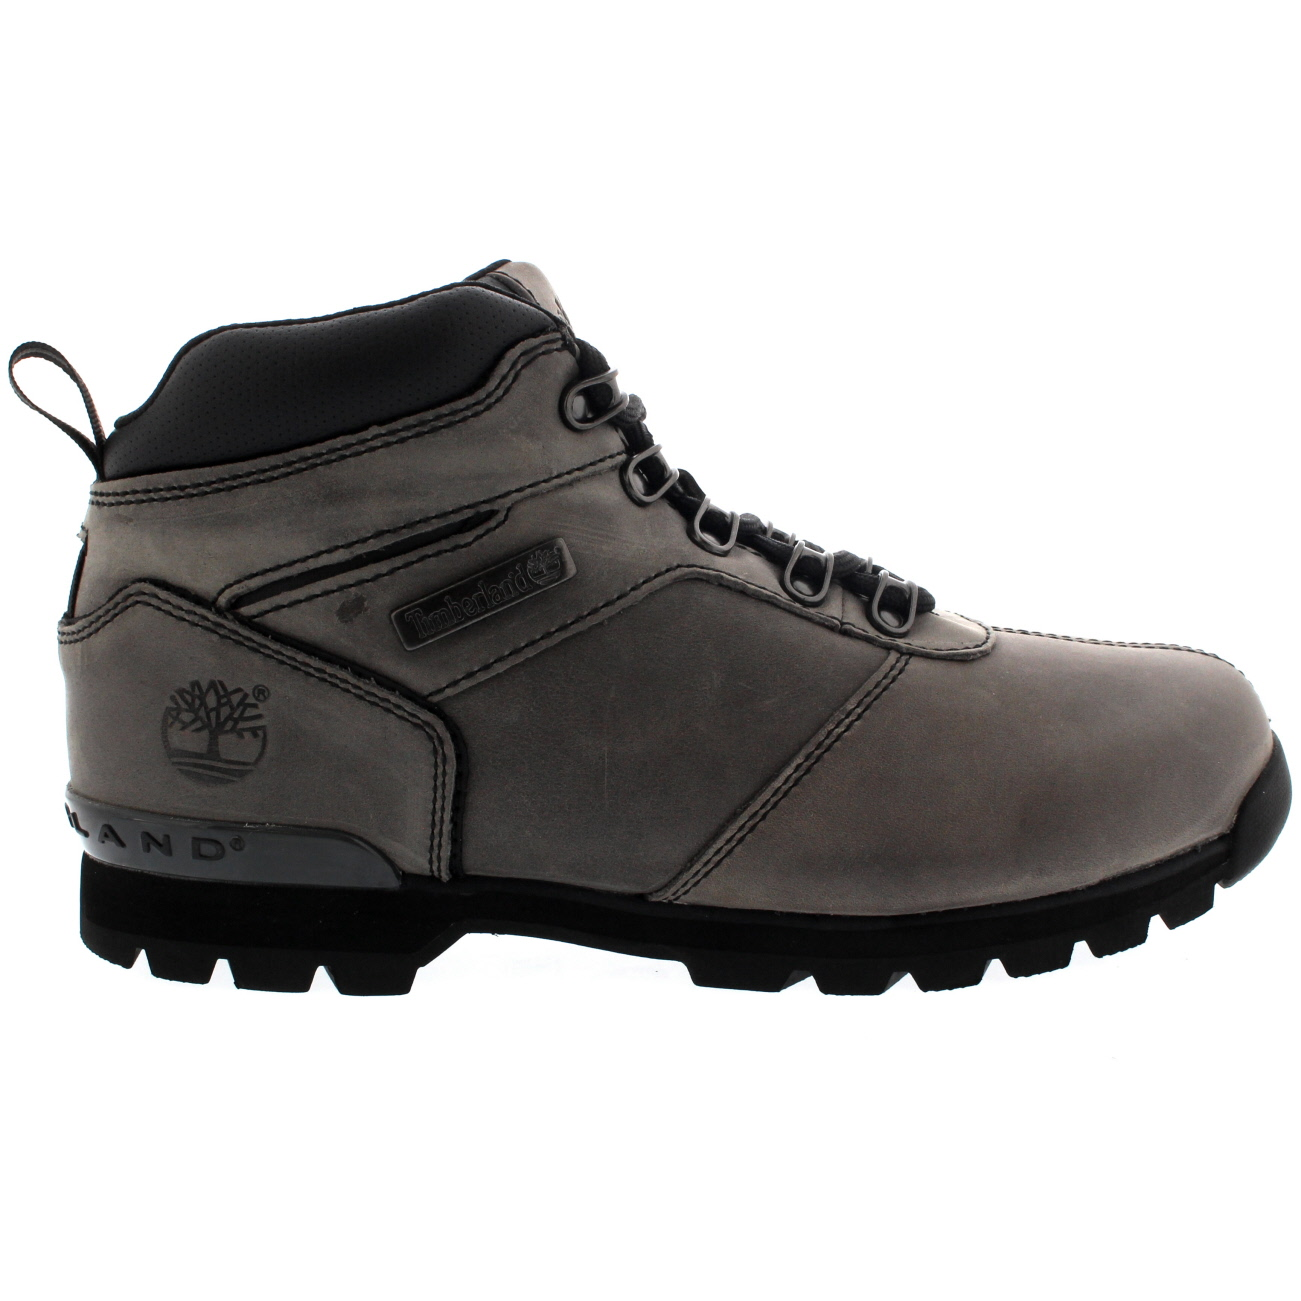 Details about Mens Timberland Splitrock 2 Winter Casual Walking Nubuck Hiker Boots All Sizes